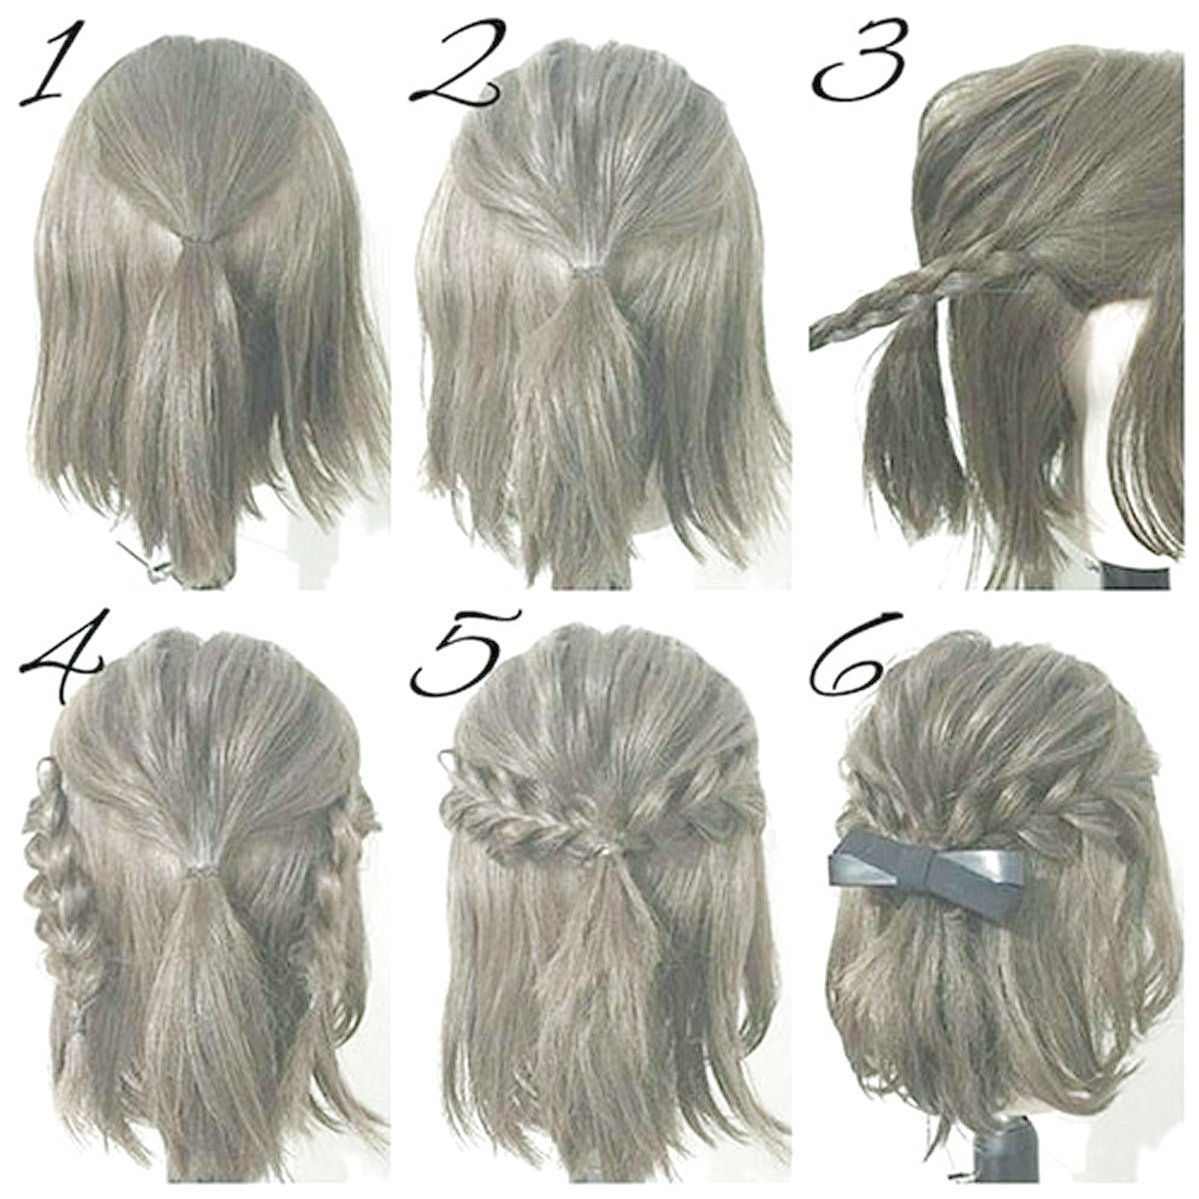 Must Have 210 Hairstyles Diy And Tutorial For All Hair Lengths Fashion Check More At Dressfitme Com Braid Simple Prom Hair Short Hair Hacks Hair Tutorial